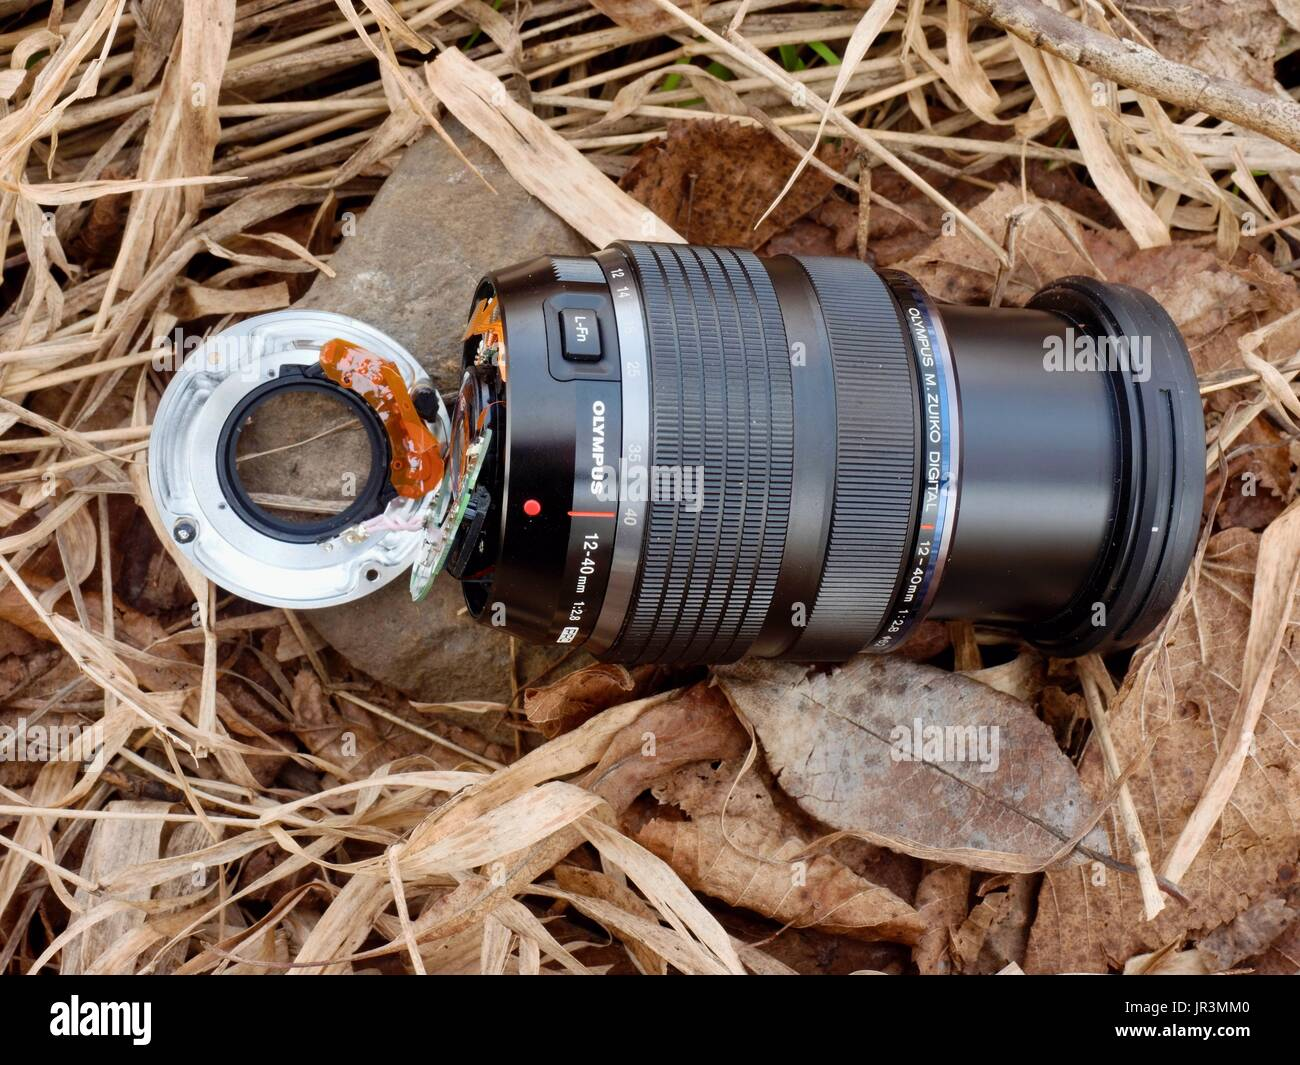 6th of February 2017. My Olympus 12-40 f2.8 lens with camera fall down from bridge to stones in river. The mount broke electronics in lens body and de - Stock Image